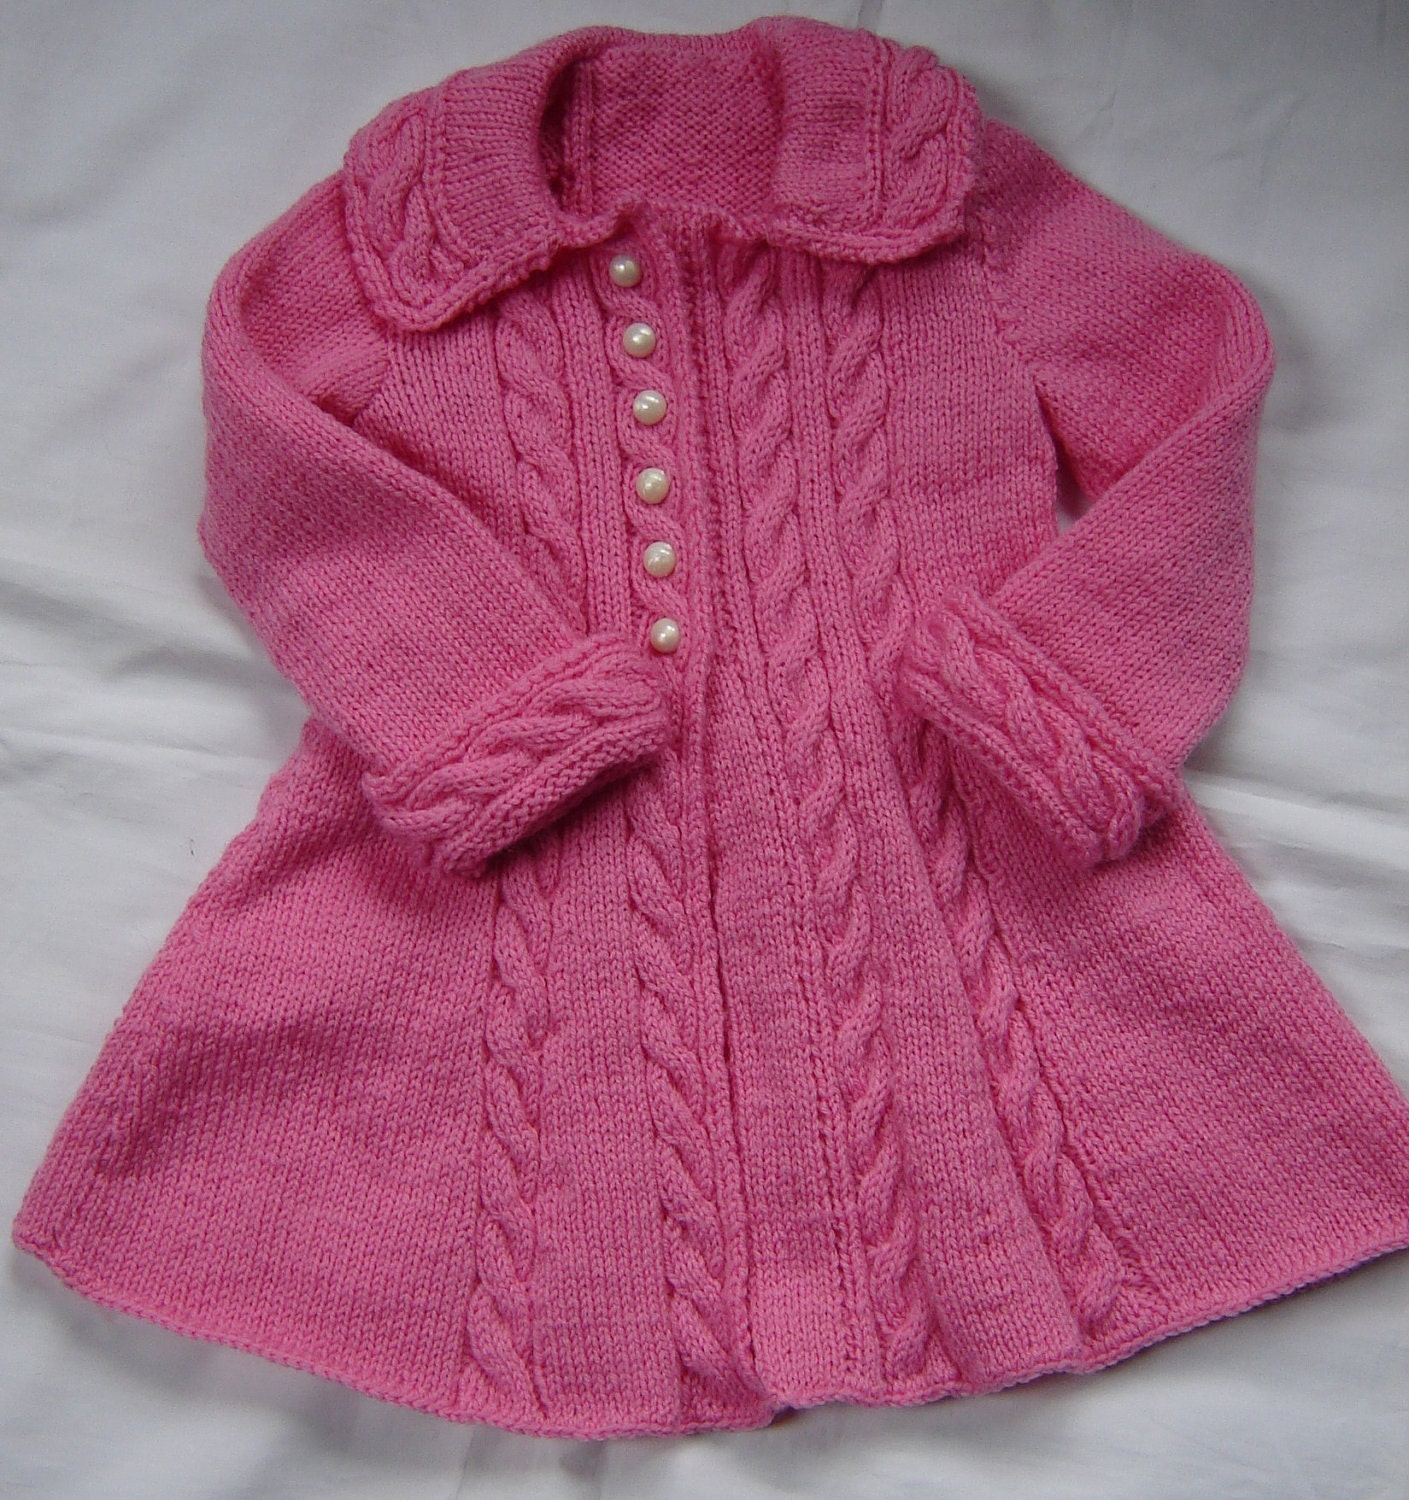 Toddler Cardigan Knitting Pattern : Baby Girls Toddler Sweater Coat Swing Style Hand Knit Crochet